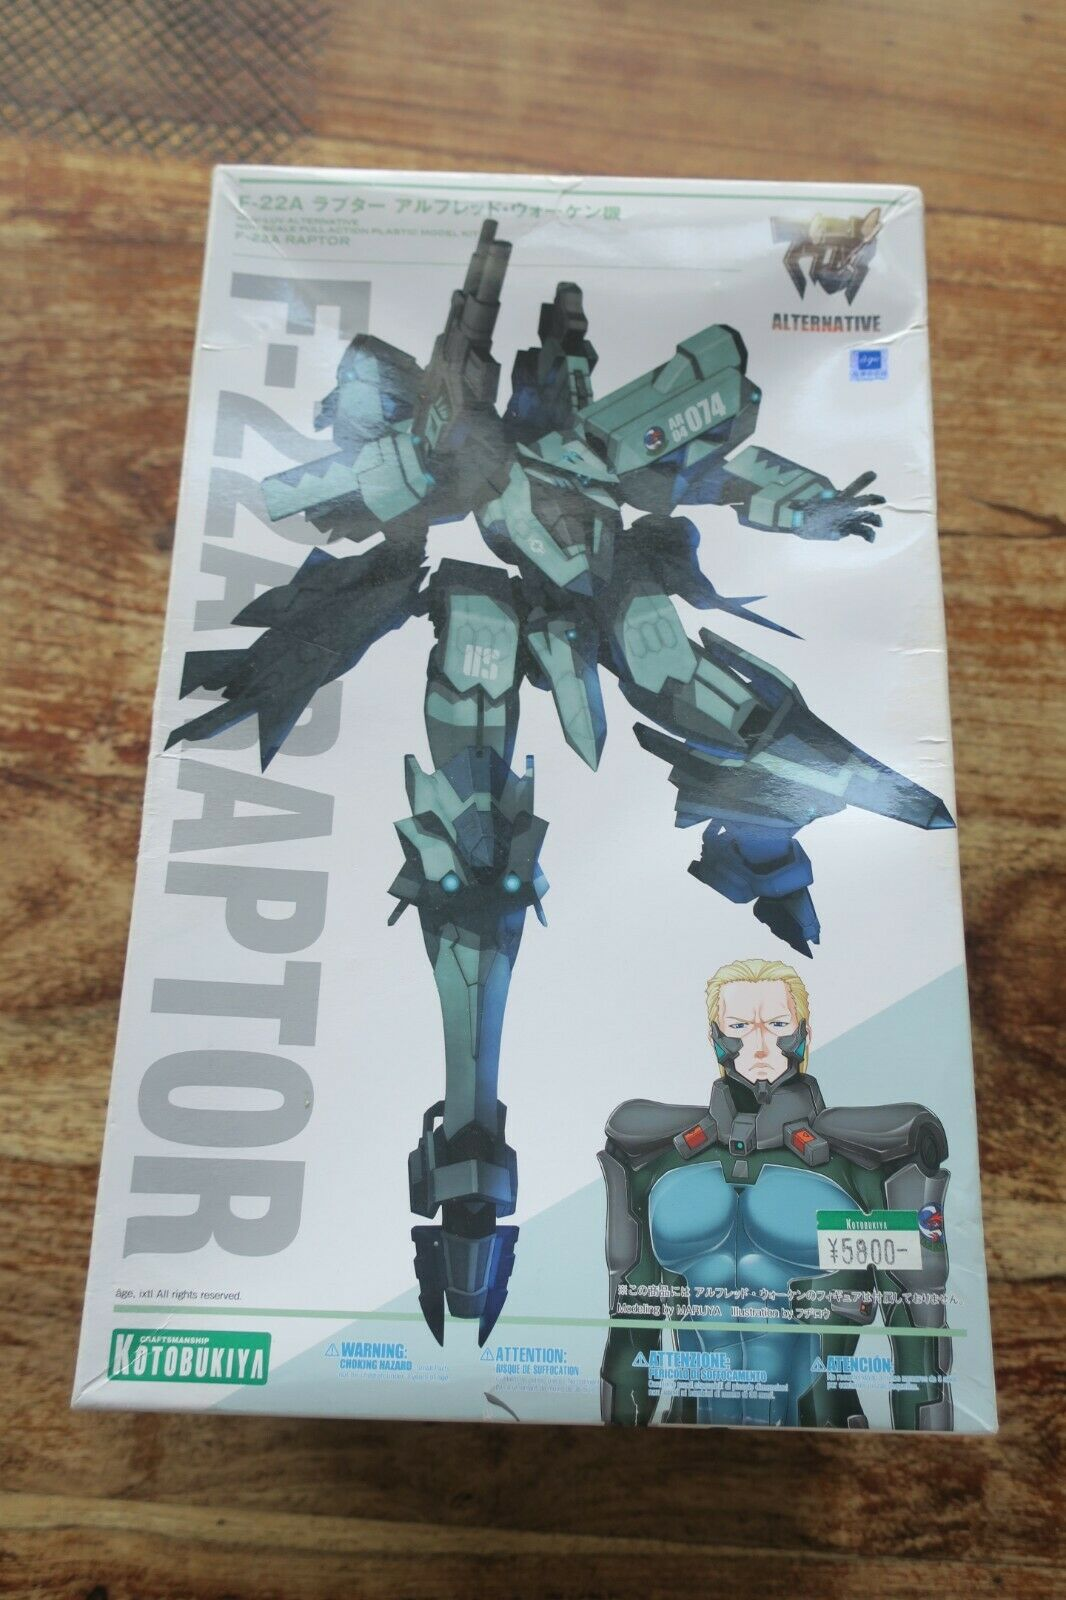 F 22 A RAPTOR KOTOBUKIYA    MUV-LUV ALTERNATIVE  MODEL KIT -- MAQUETTE A MONTER